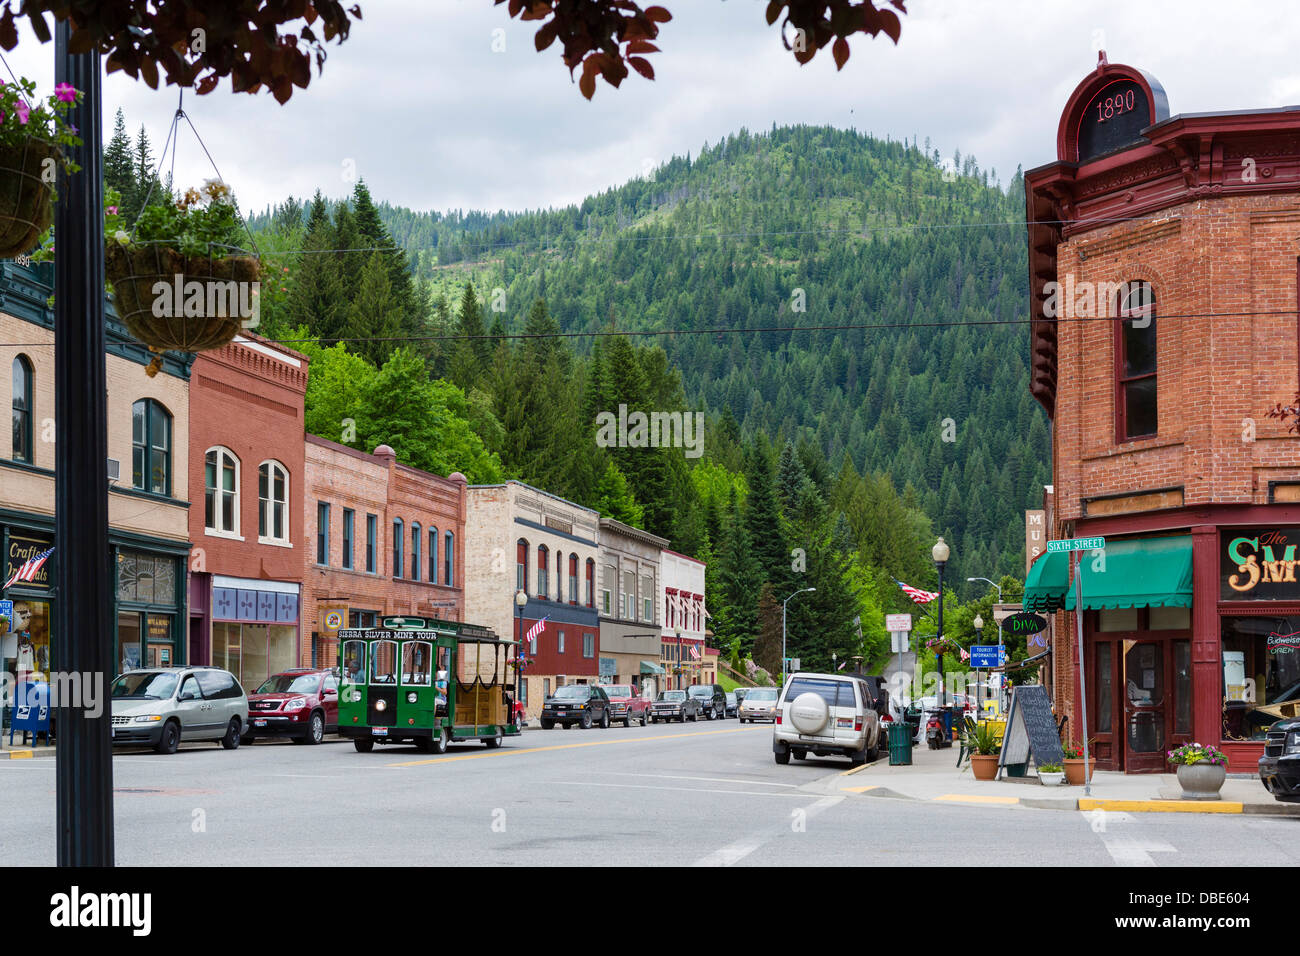 Bank Street (Main Street) in the historic old silver mining town of Wallace, Idaho, USA - Stock Image